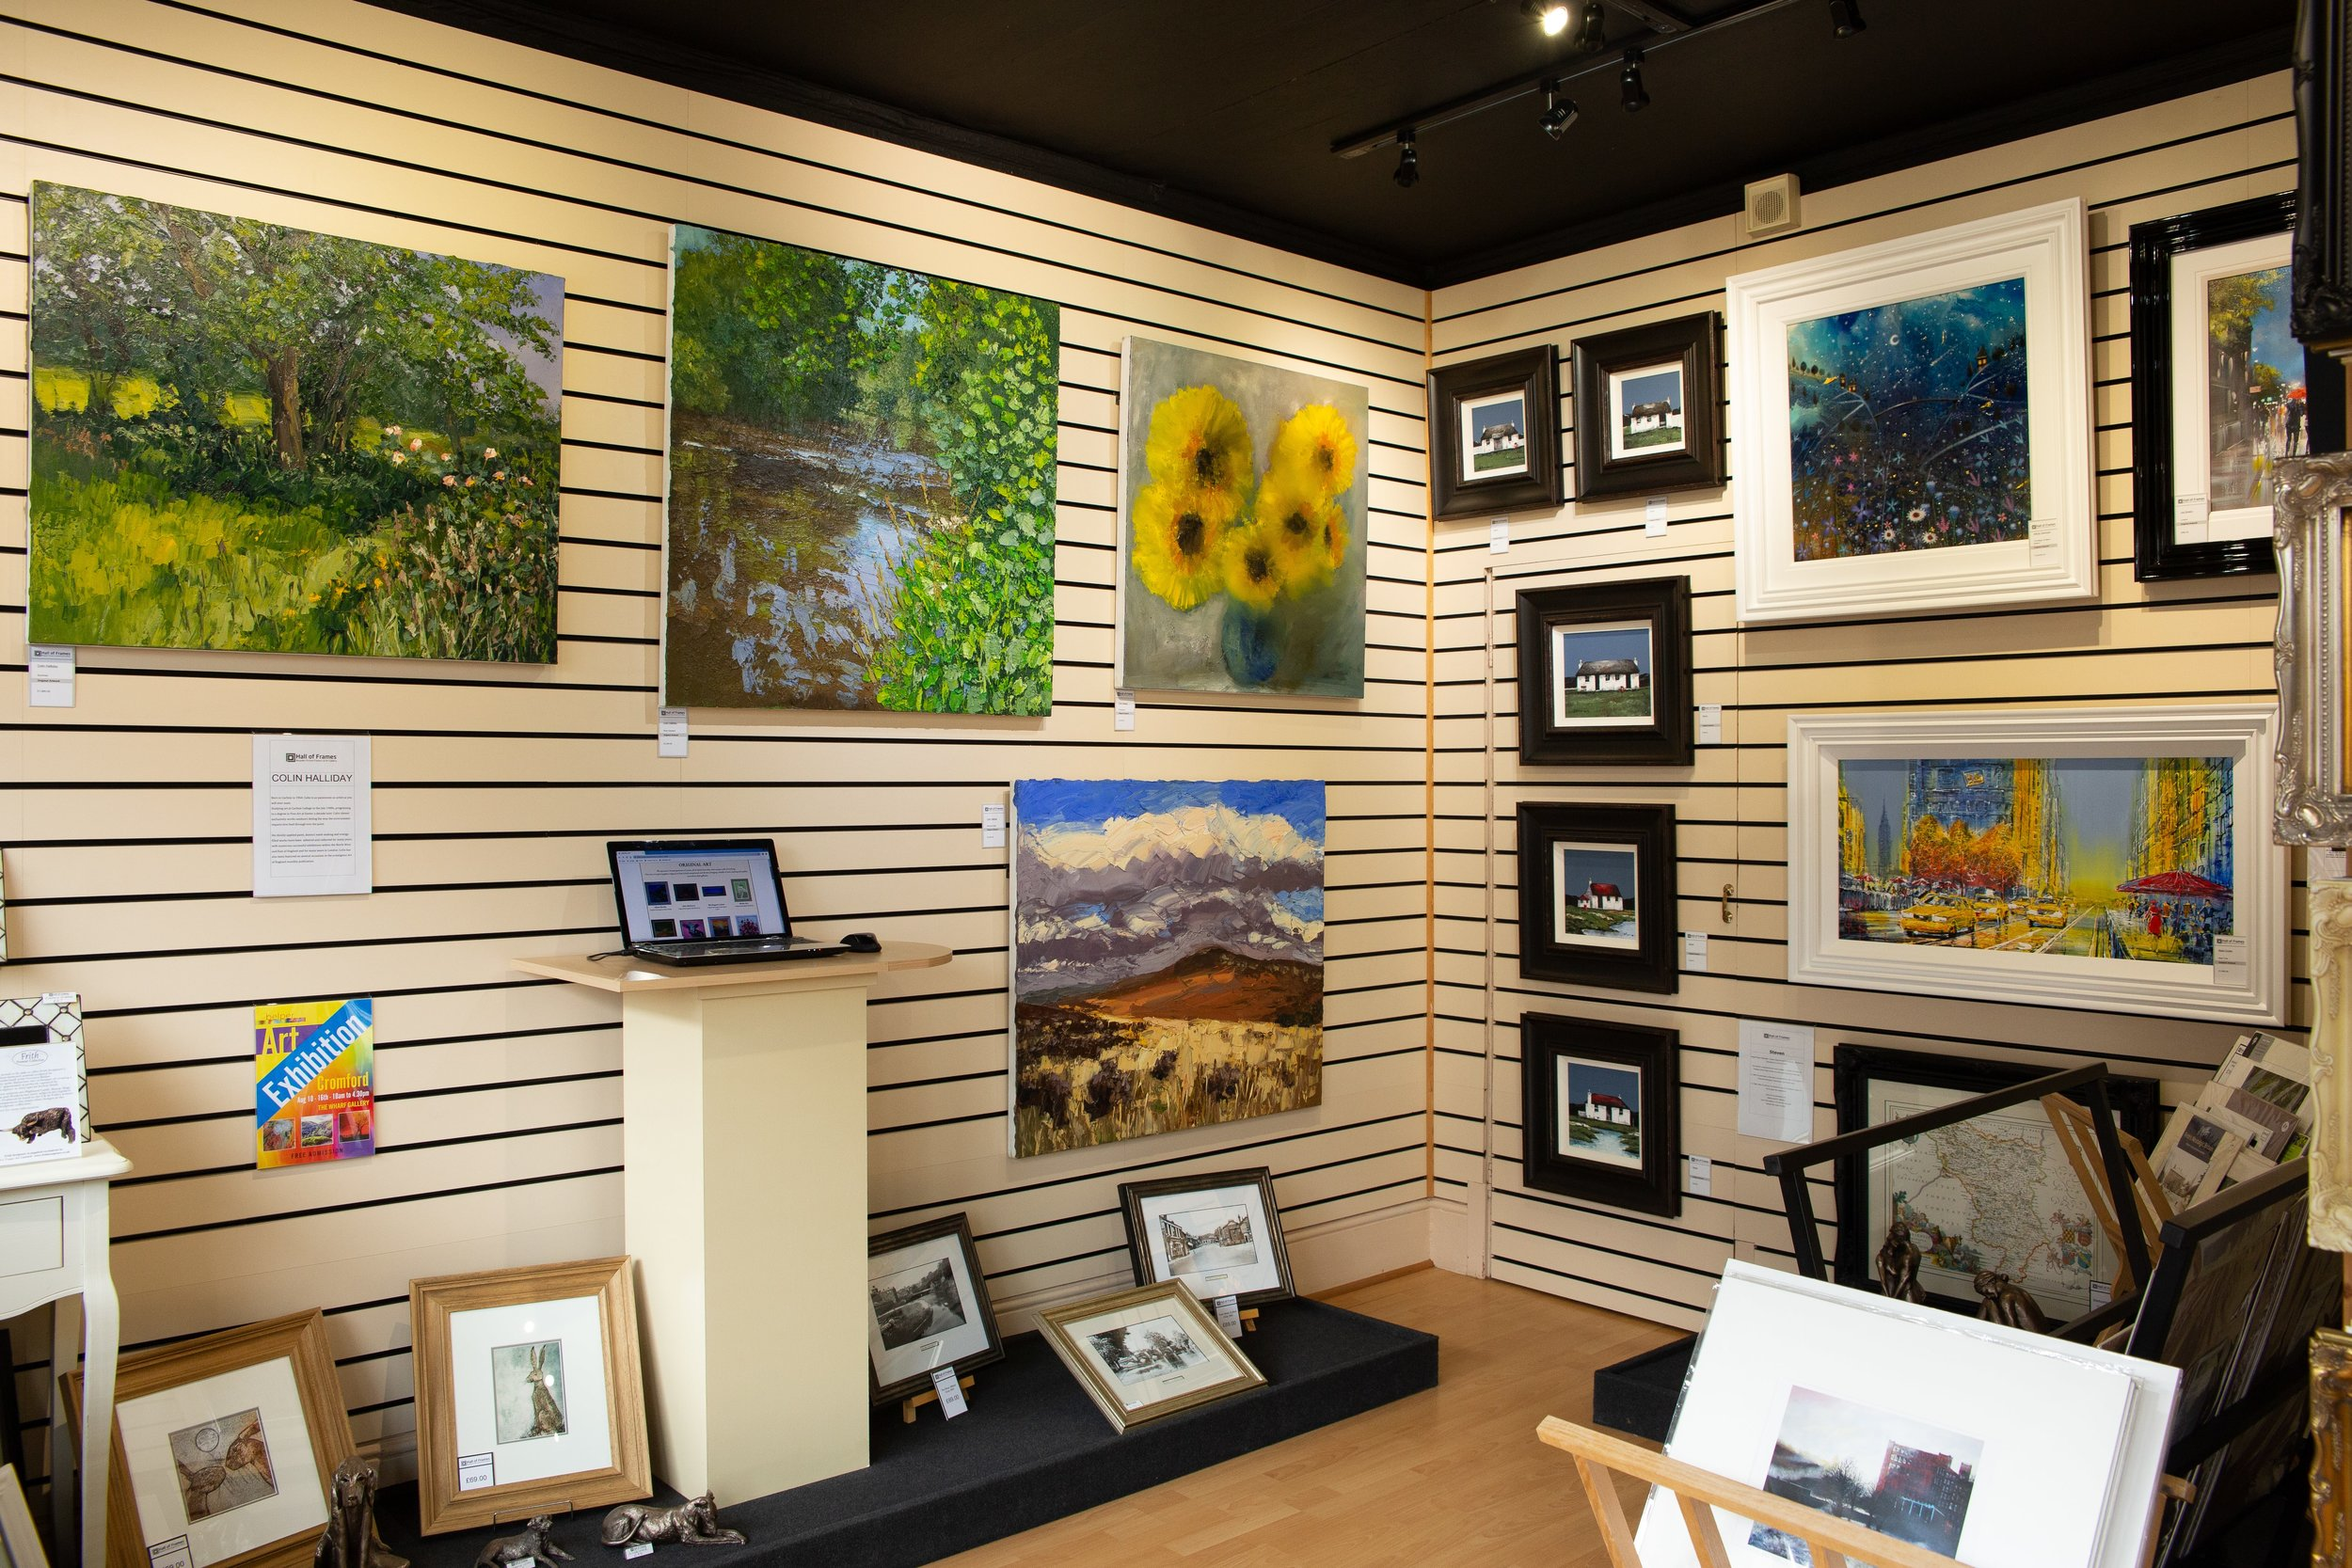 ART GALLERY - We have over 30 artists on display in our fine art gallery which showcases a diverse range of original oil paintings, watercolours, acrylics and sought after limited editions.